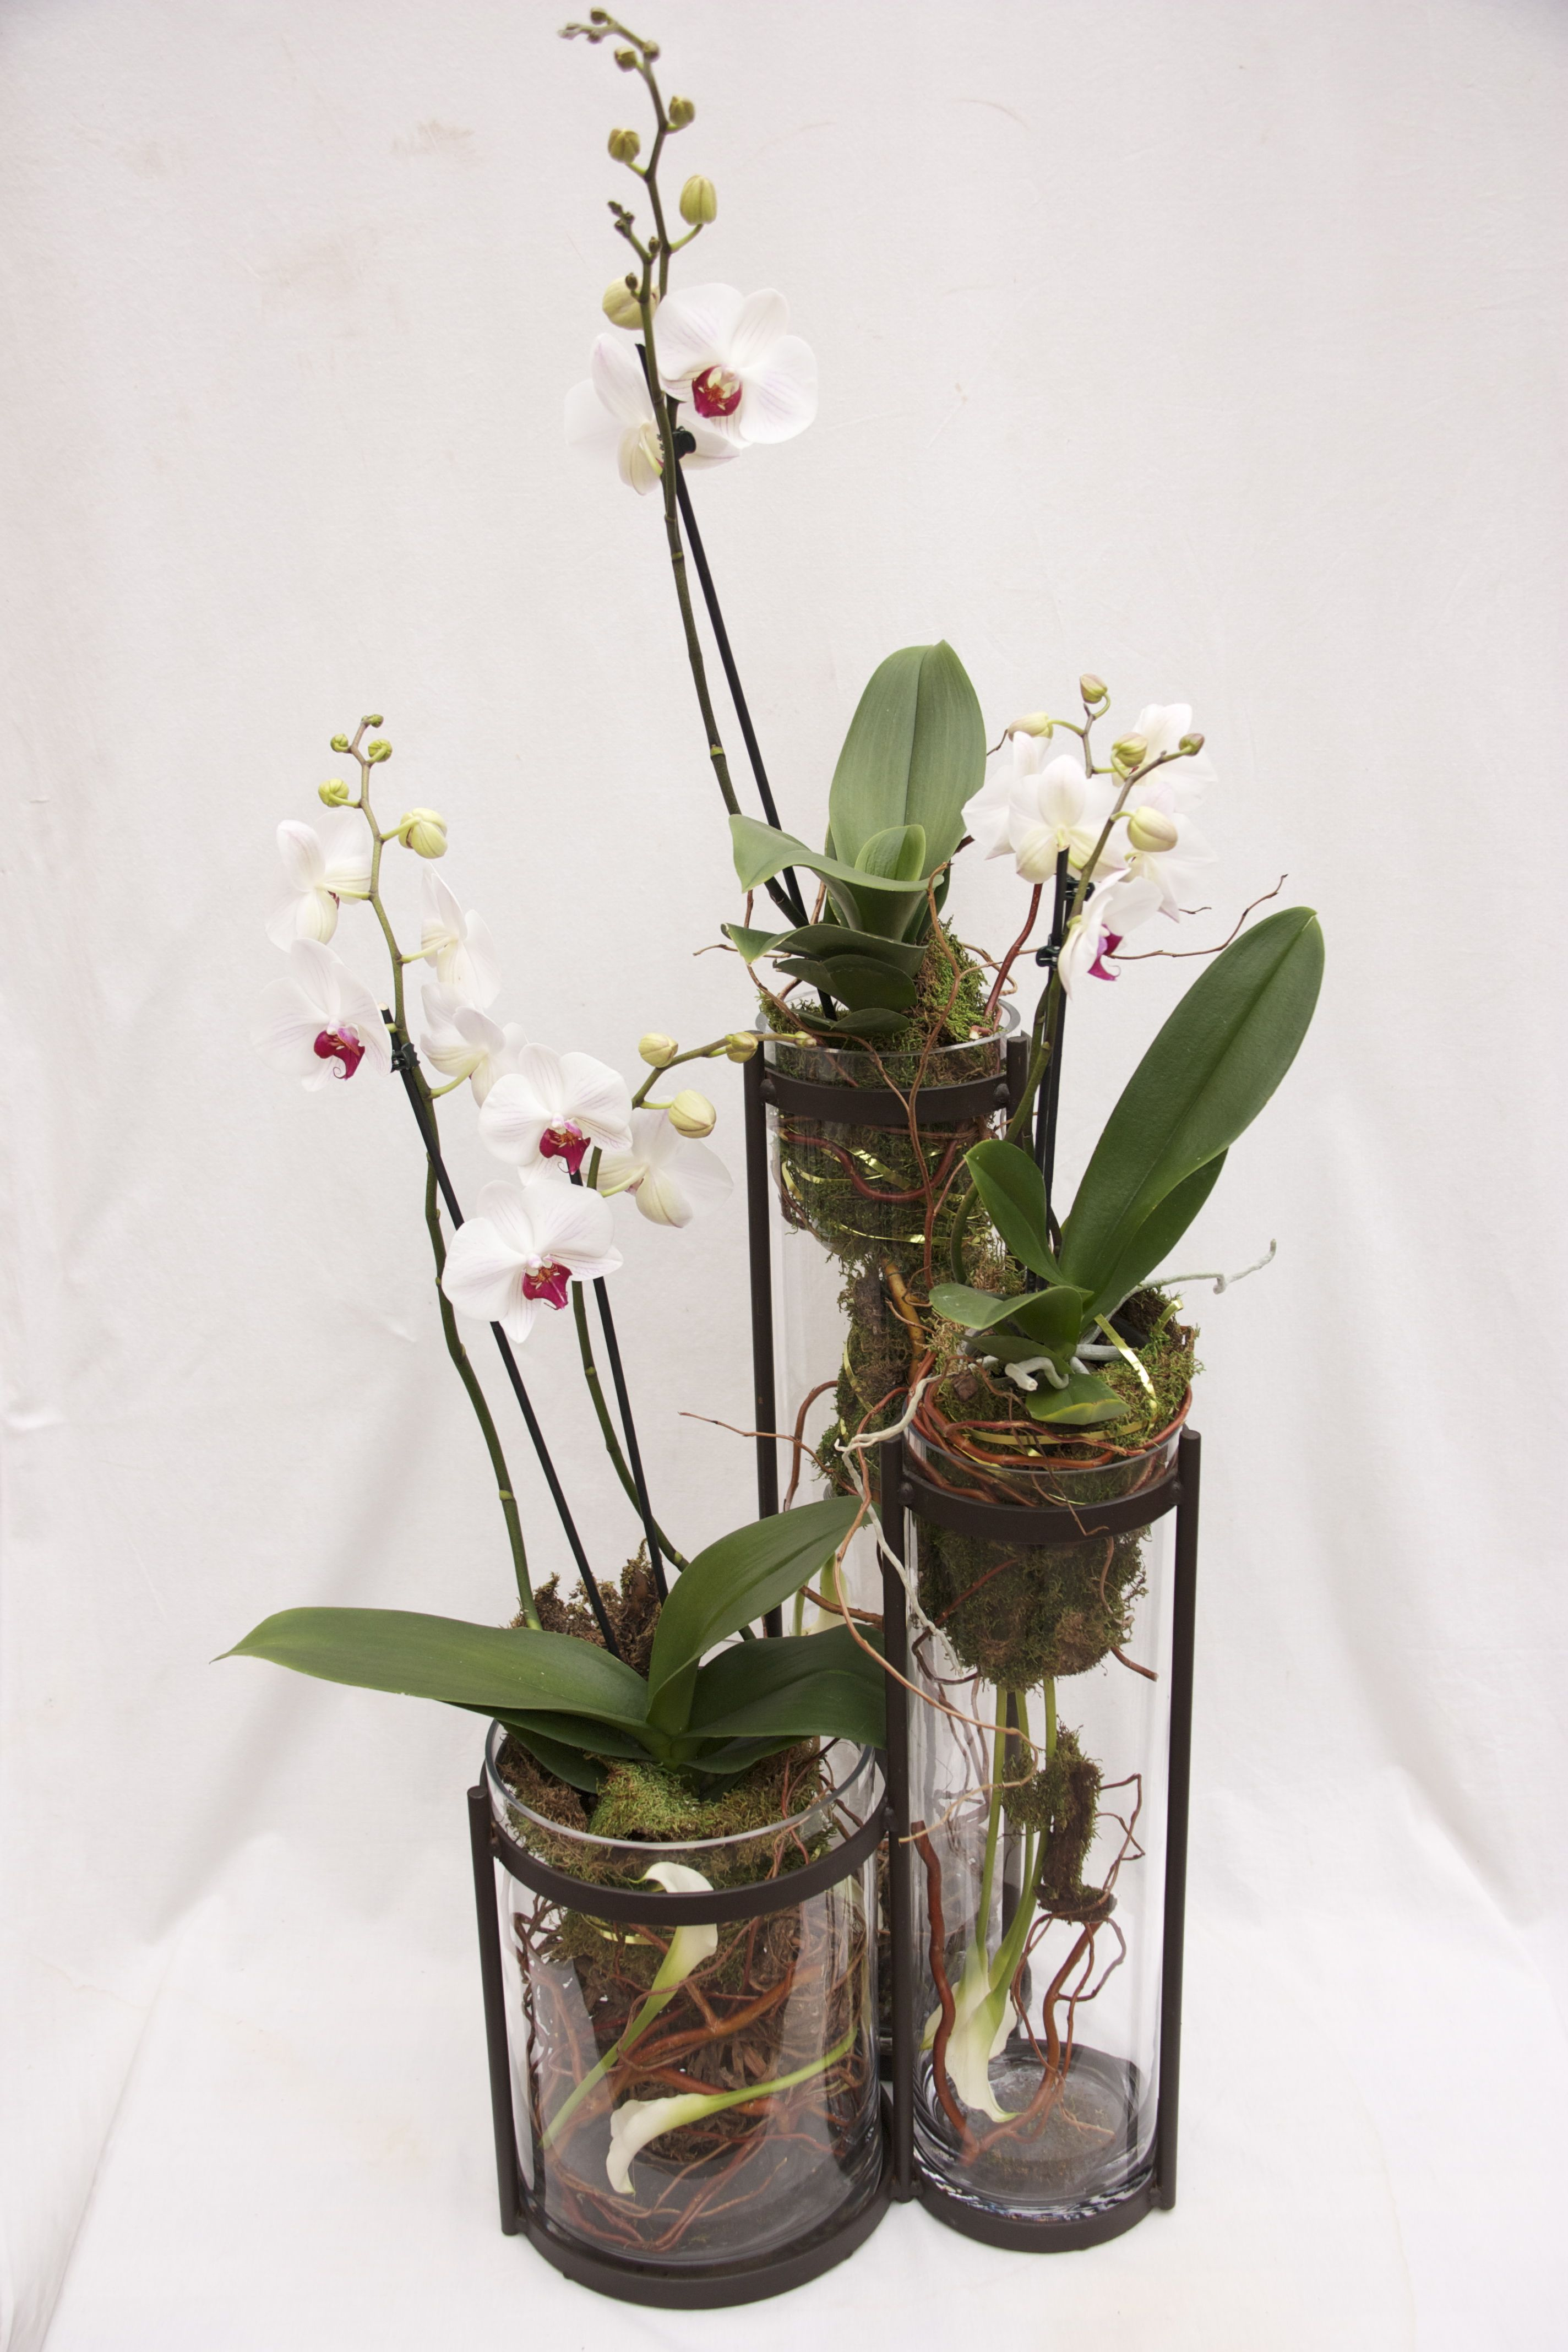 The Watering Can Flower Market Phalaenopsis planter